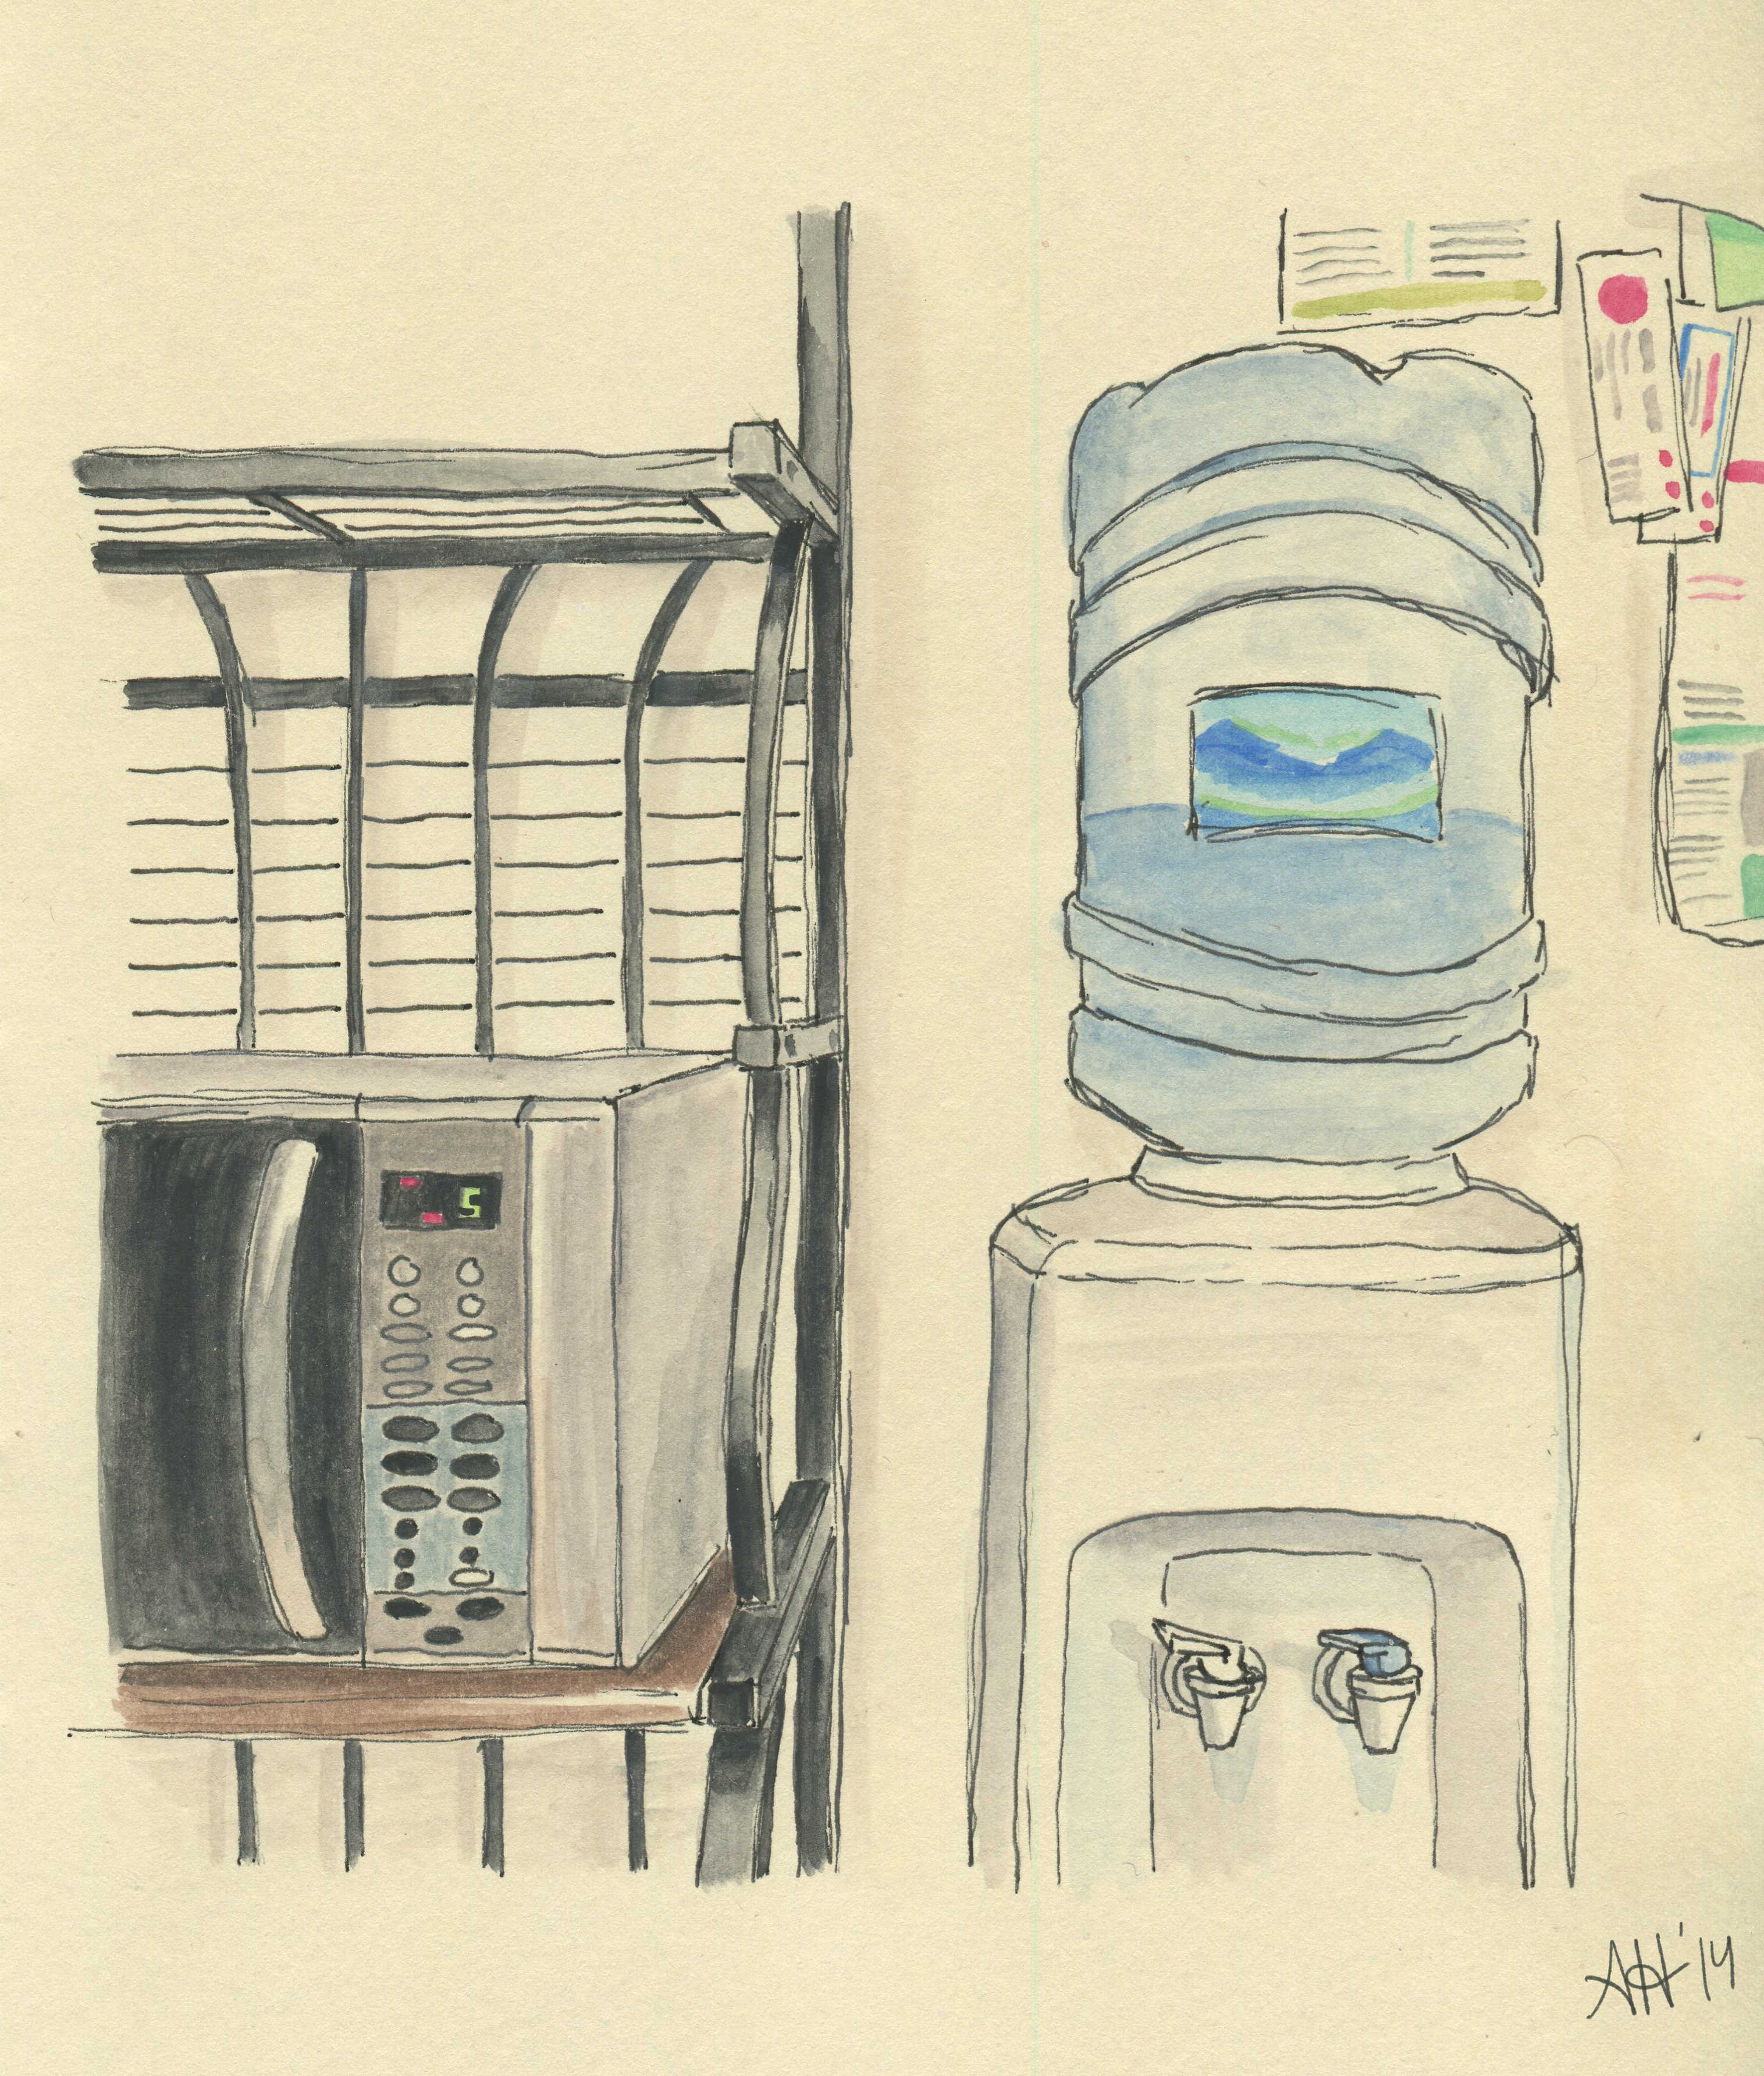 A scene of a microwave and watercooler sketched by Alleanna Harris.